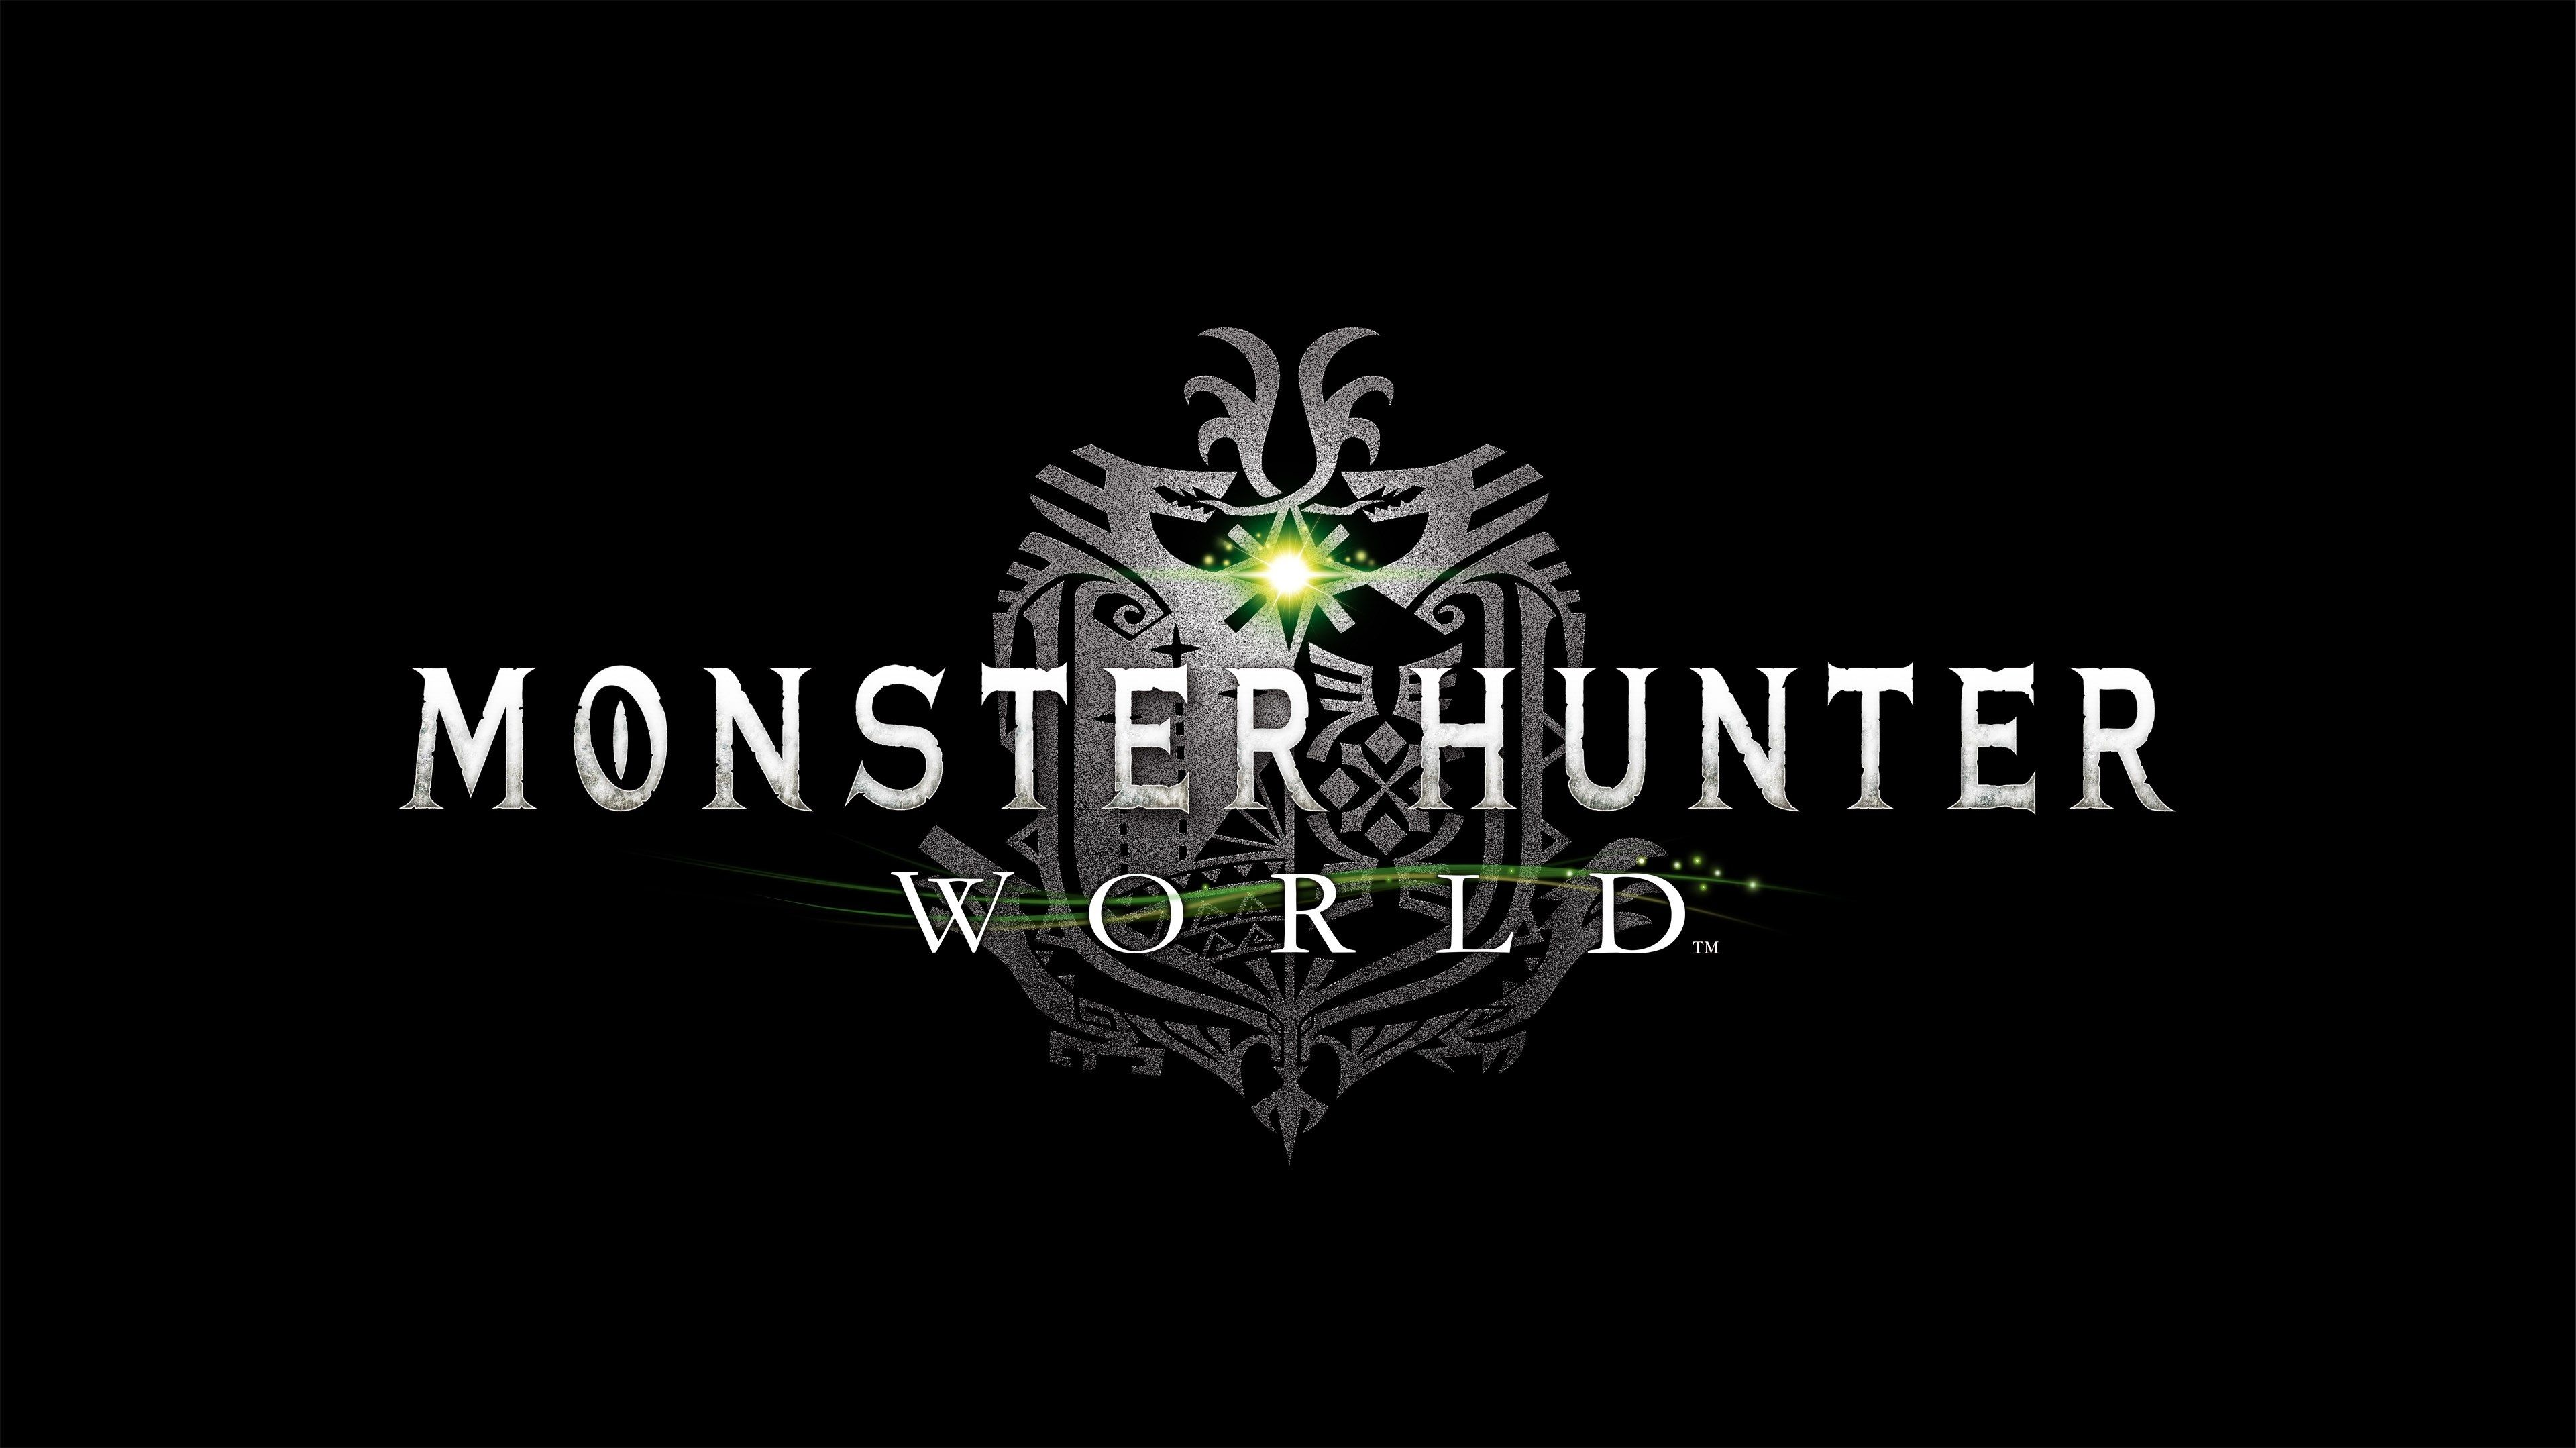 3840x2158 Monster Hunter World 4k Computer Desktop Image Wallpaper